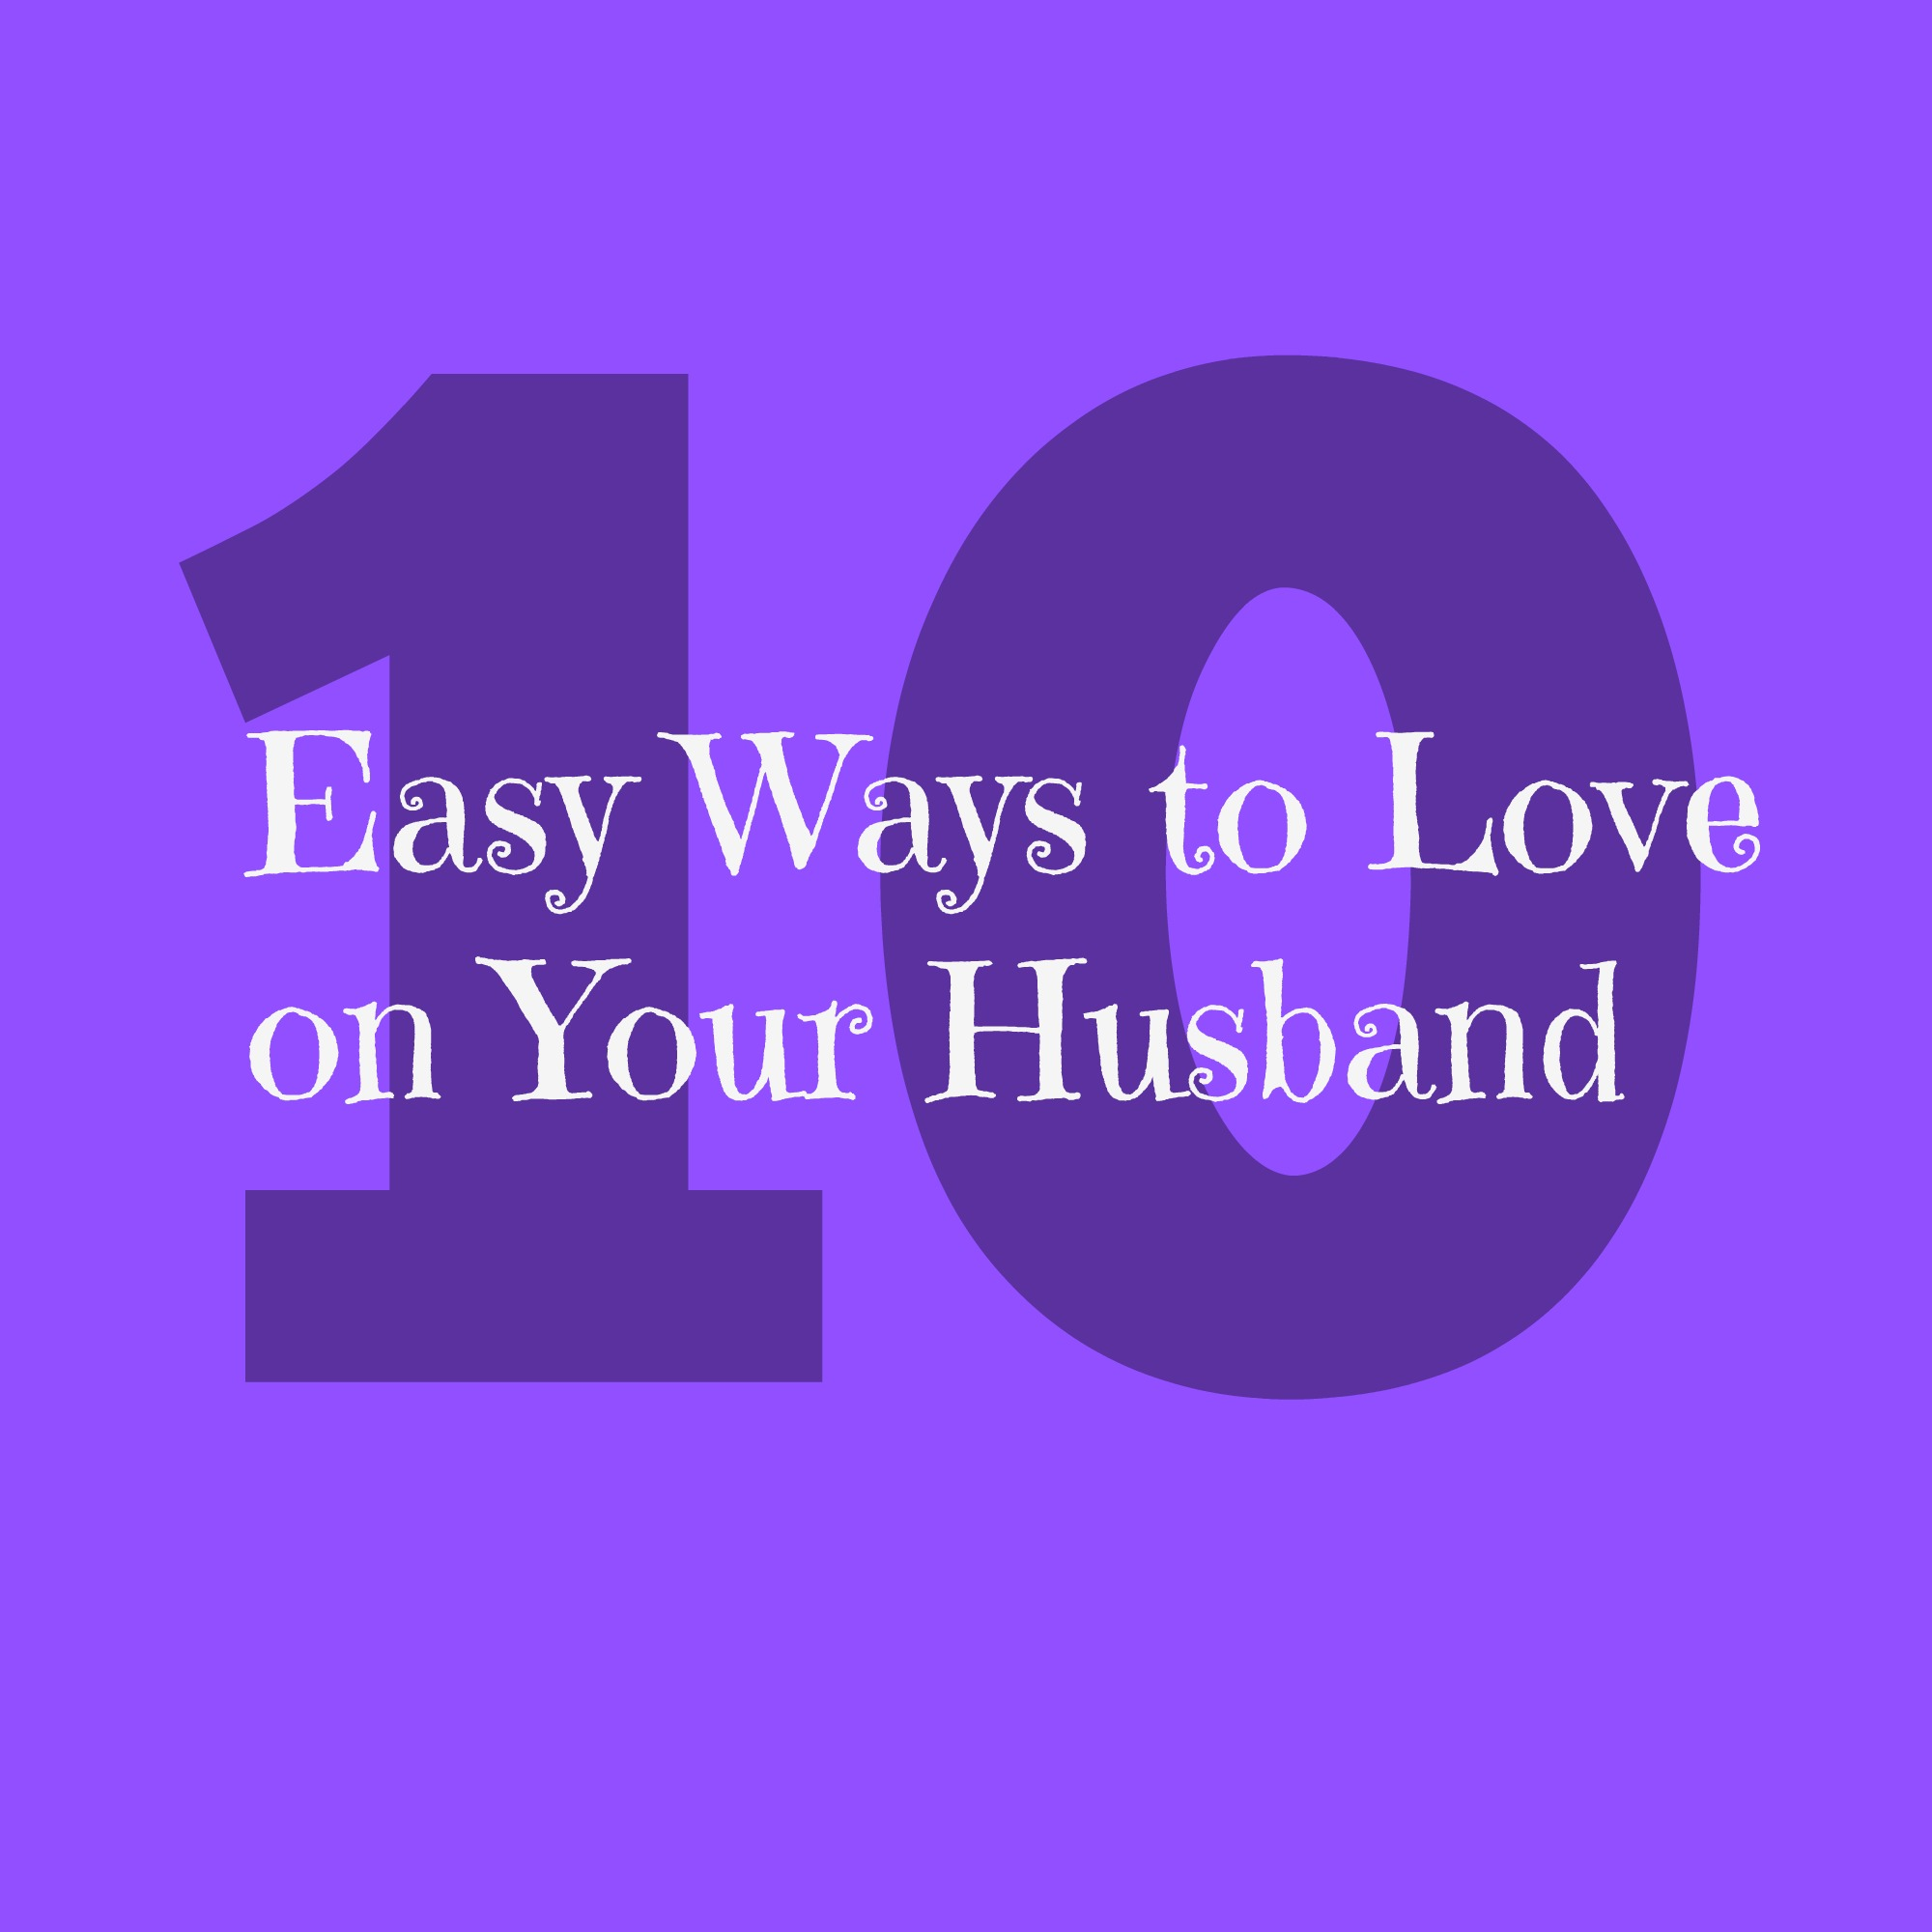 10 Easy Ways to Love on Your Husband